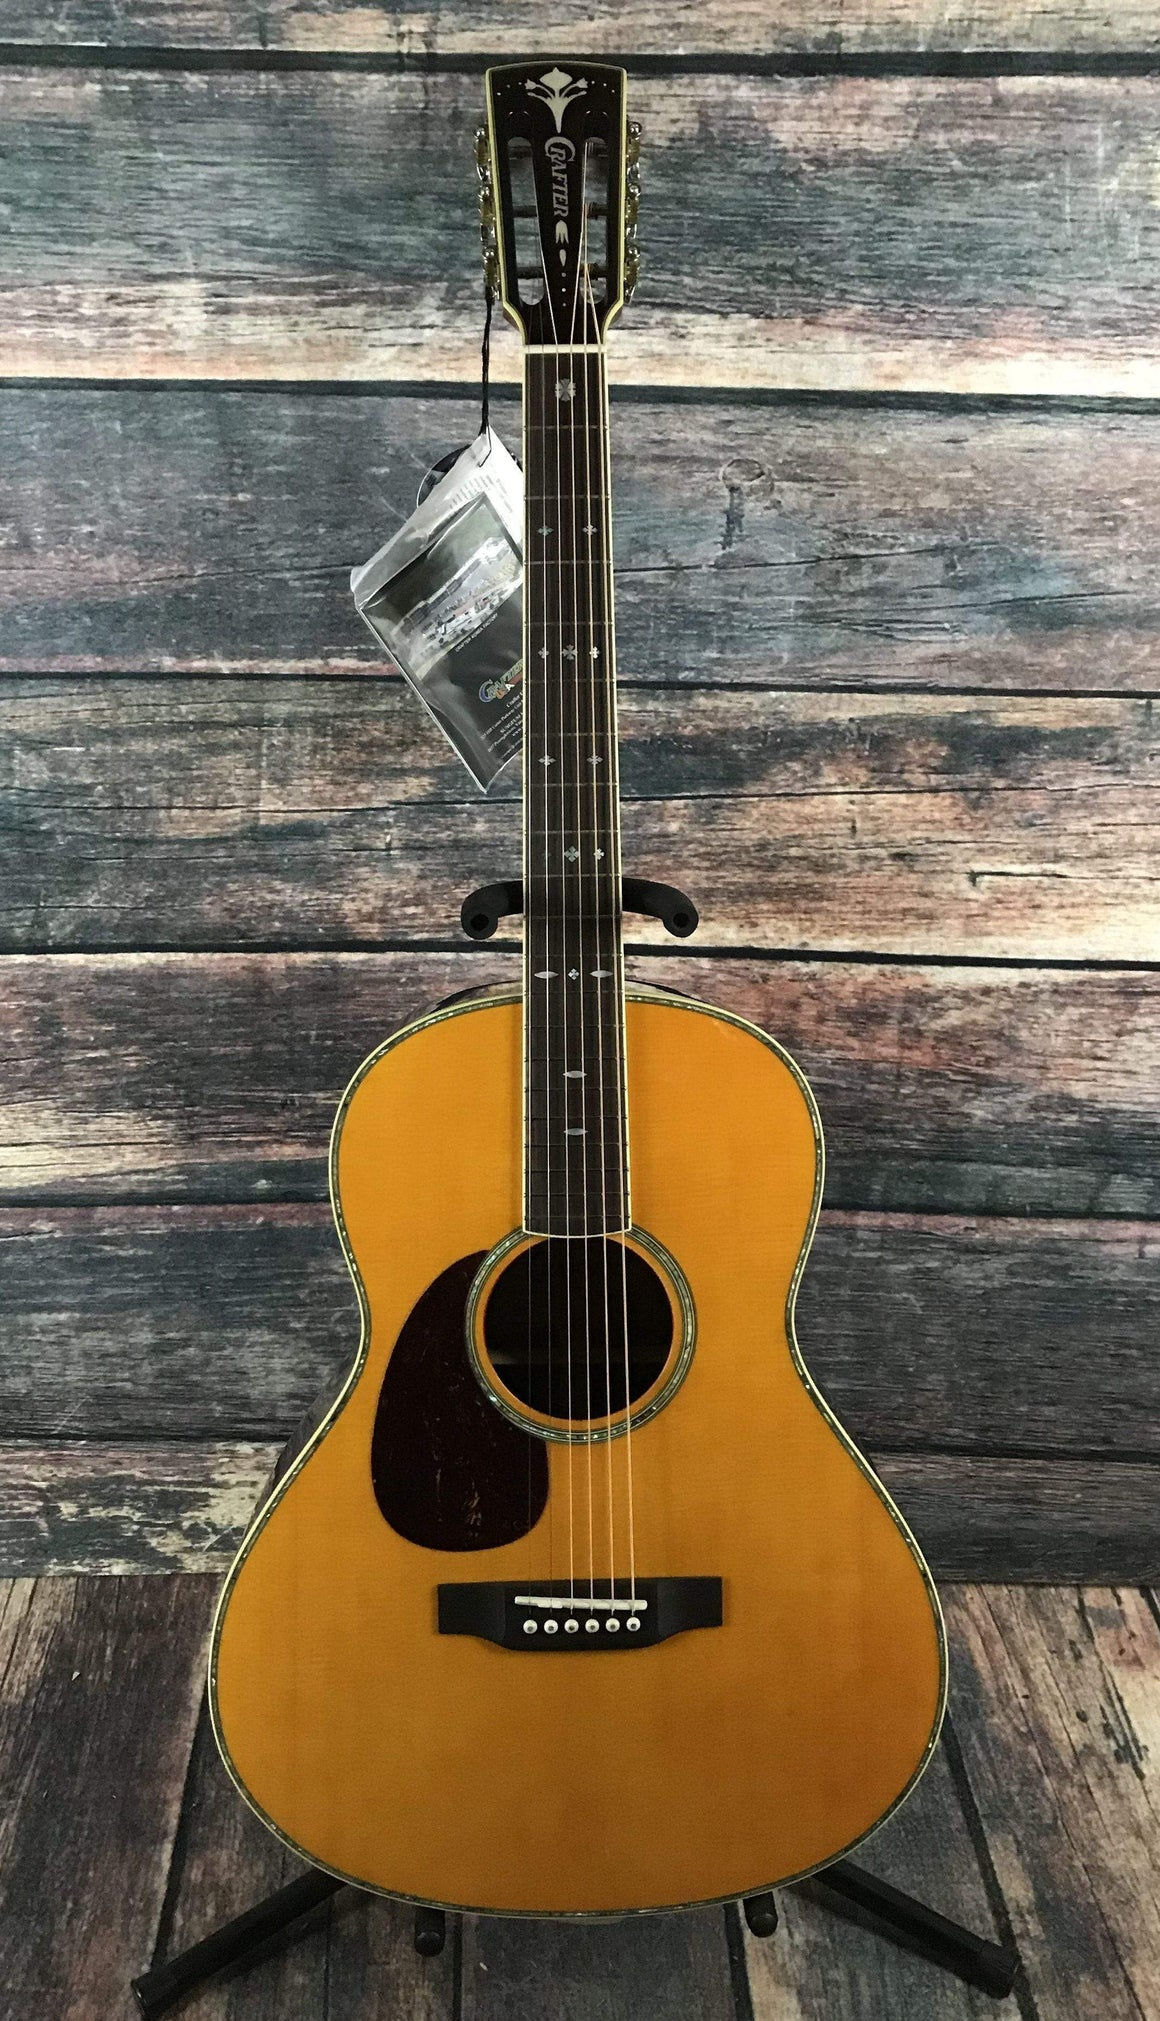 Crafter Acoustic Guitar Includes a hard shell case Crafter Left Handed TA-050/AM Parlor Acoustic Guitar